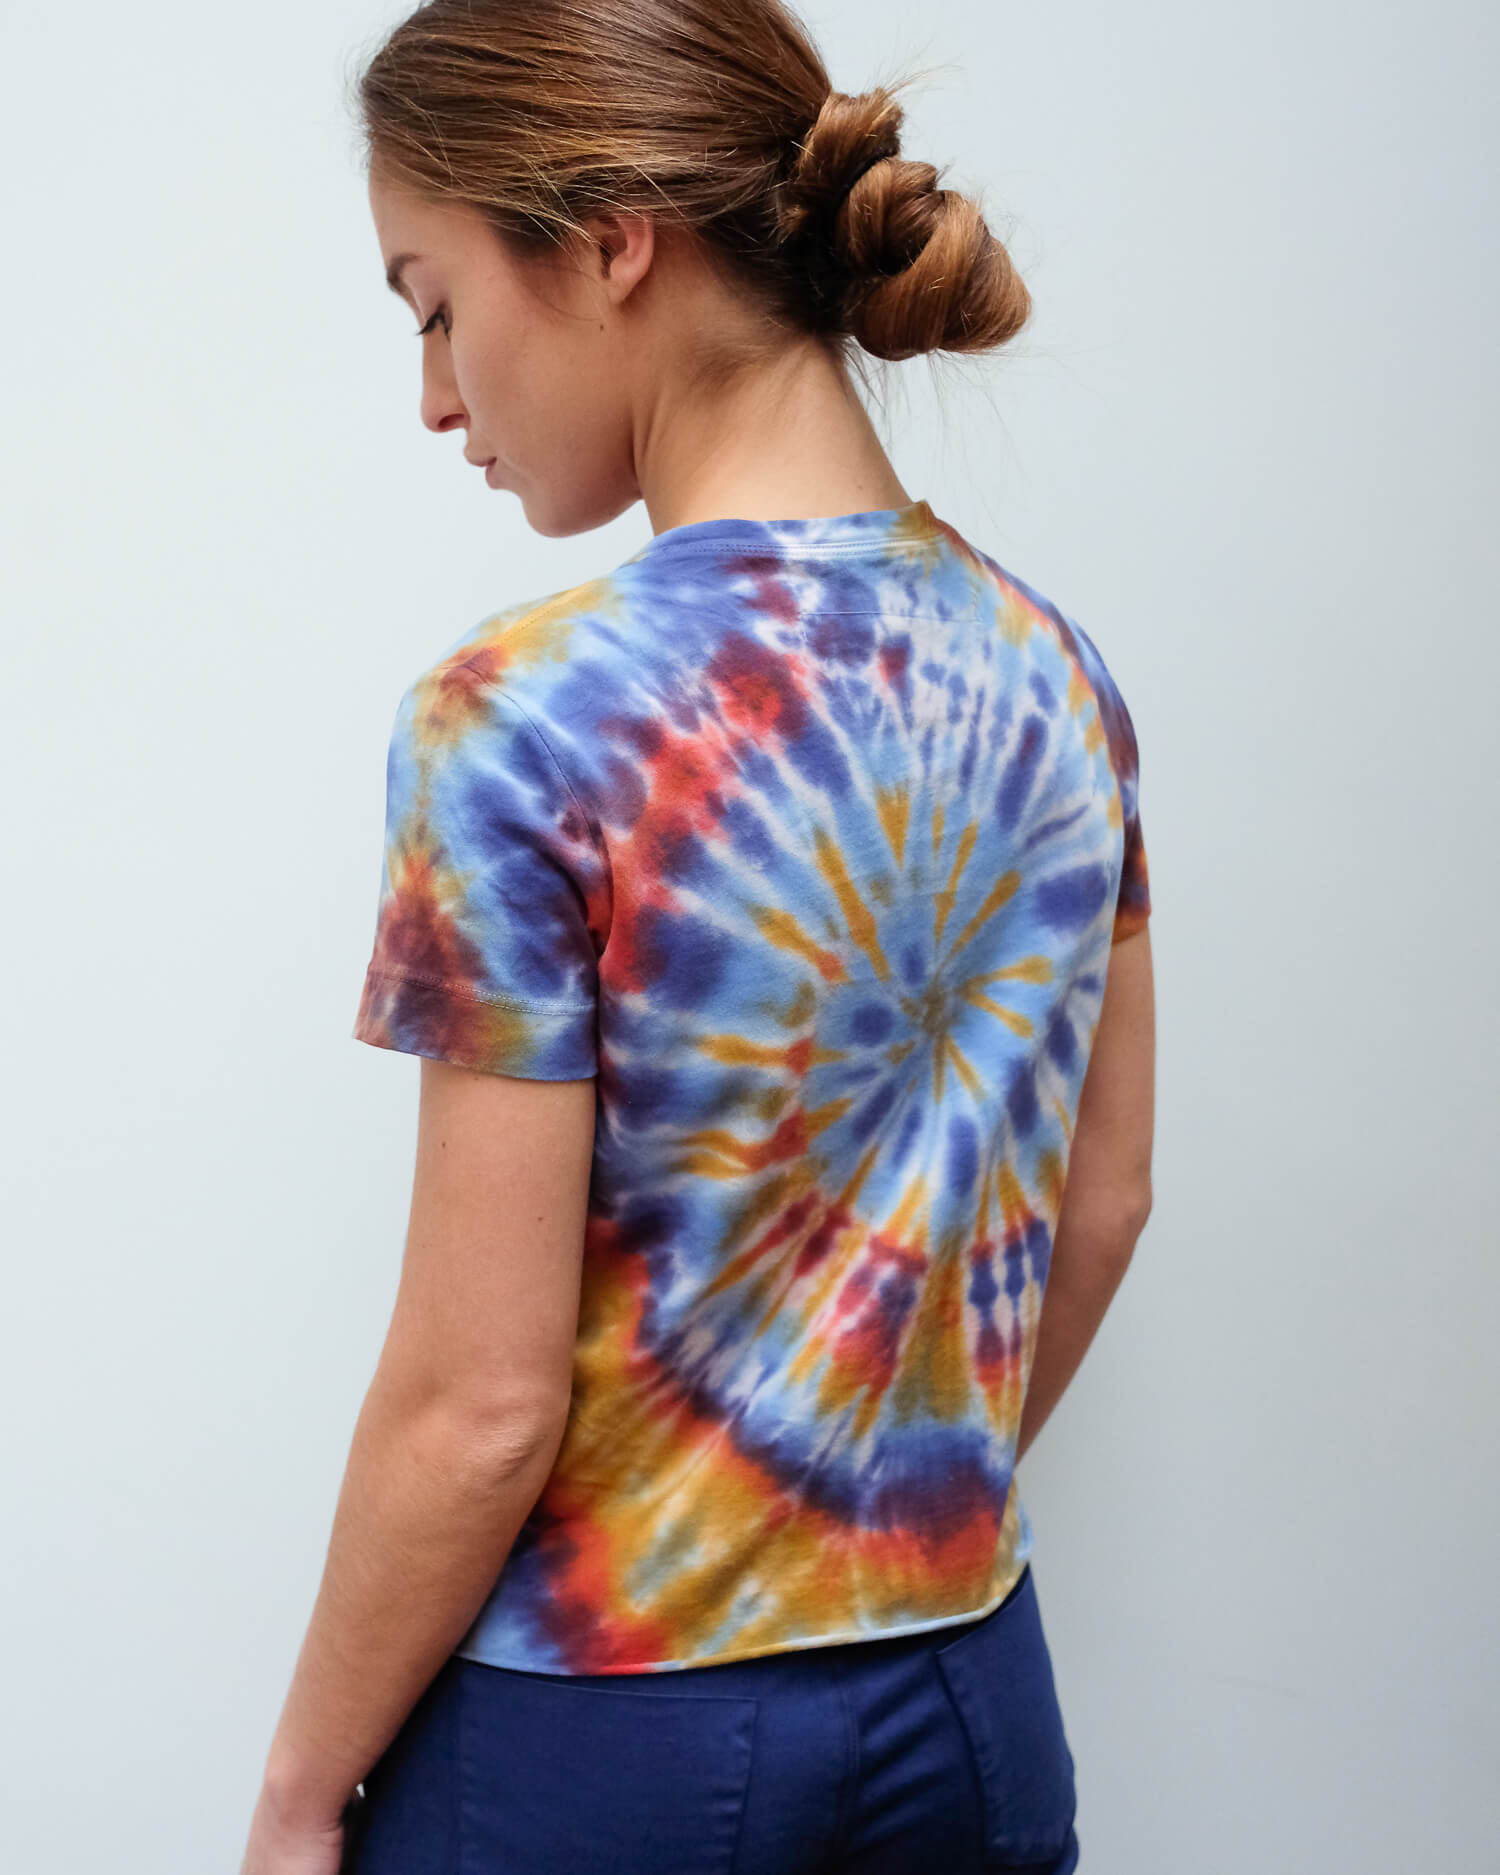 RA 3852 Tie dye boy tee in rainbow